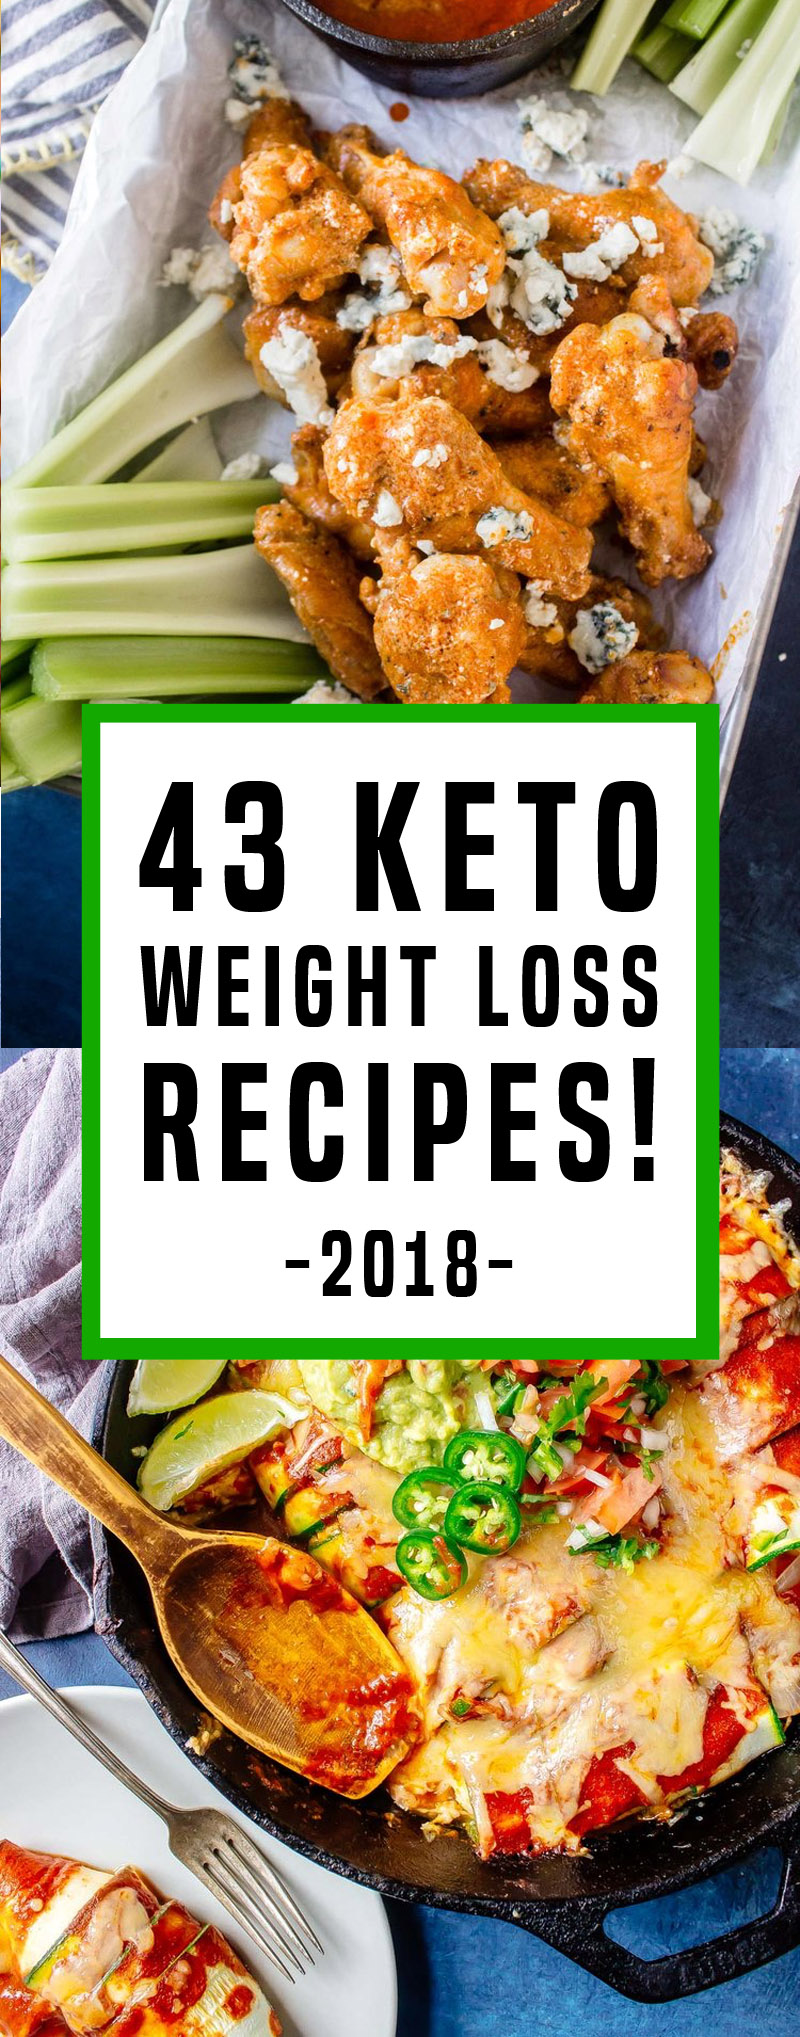 35 Easy Keto Recipes That Will Last You All Month Long—And Then Some